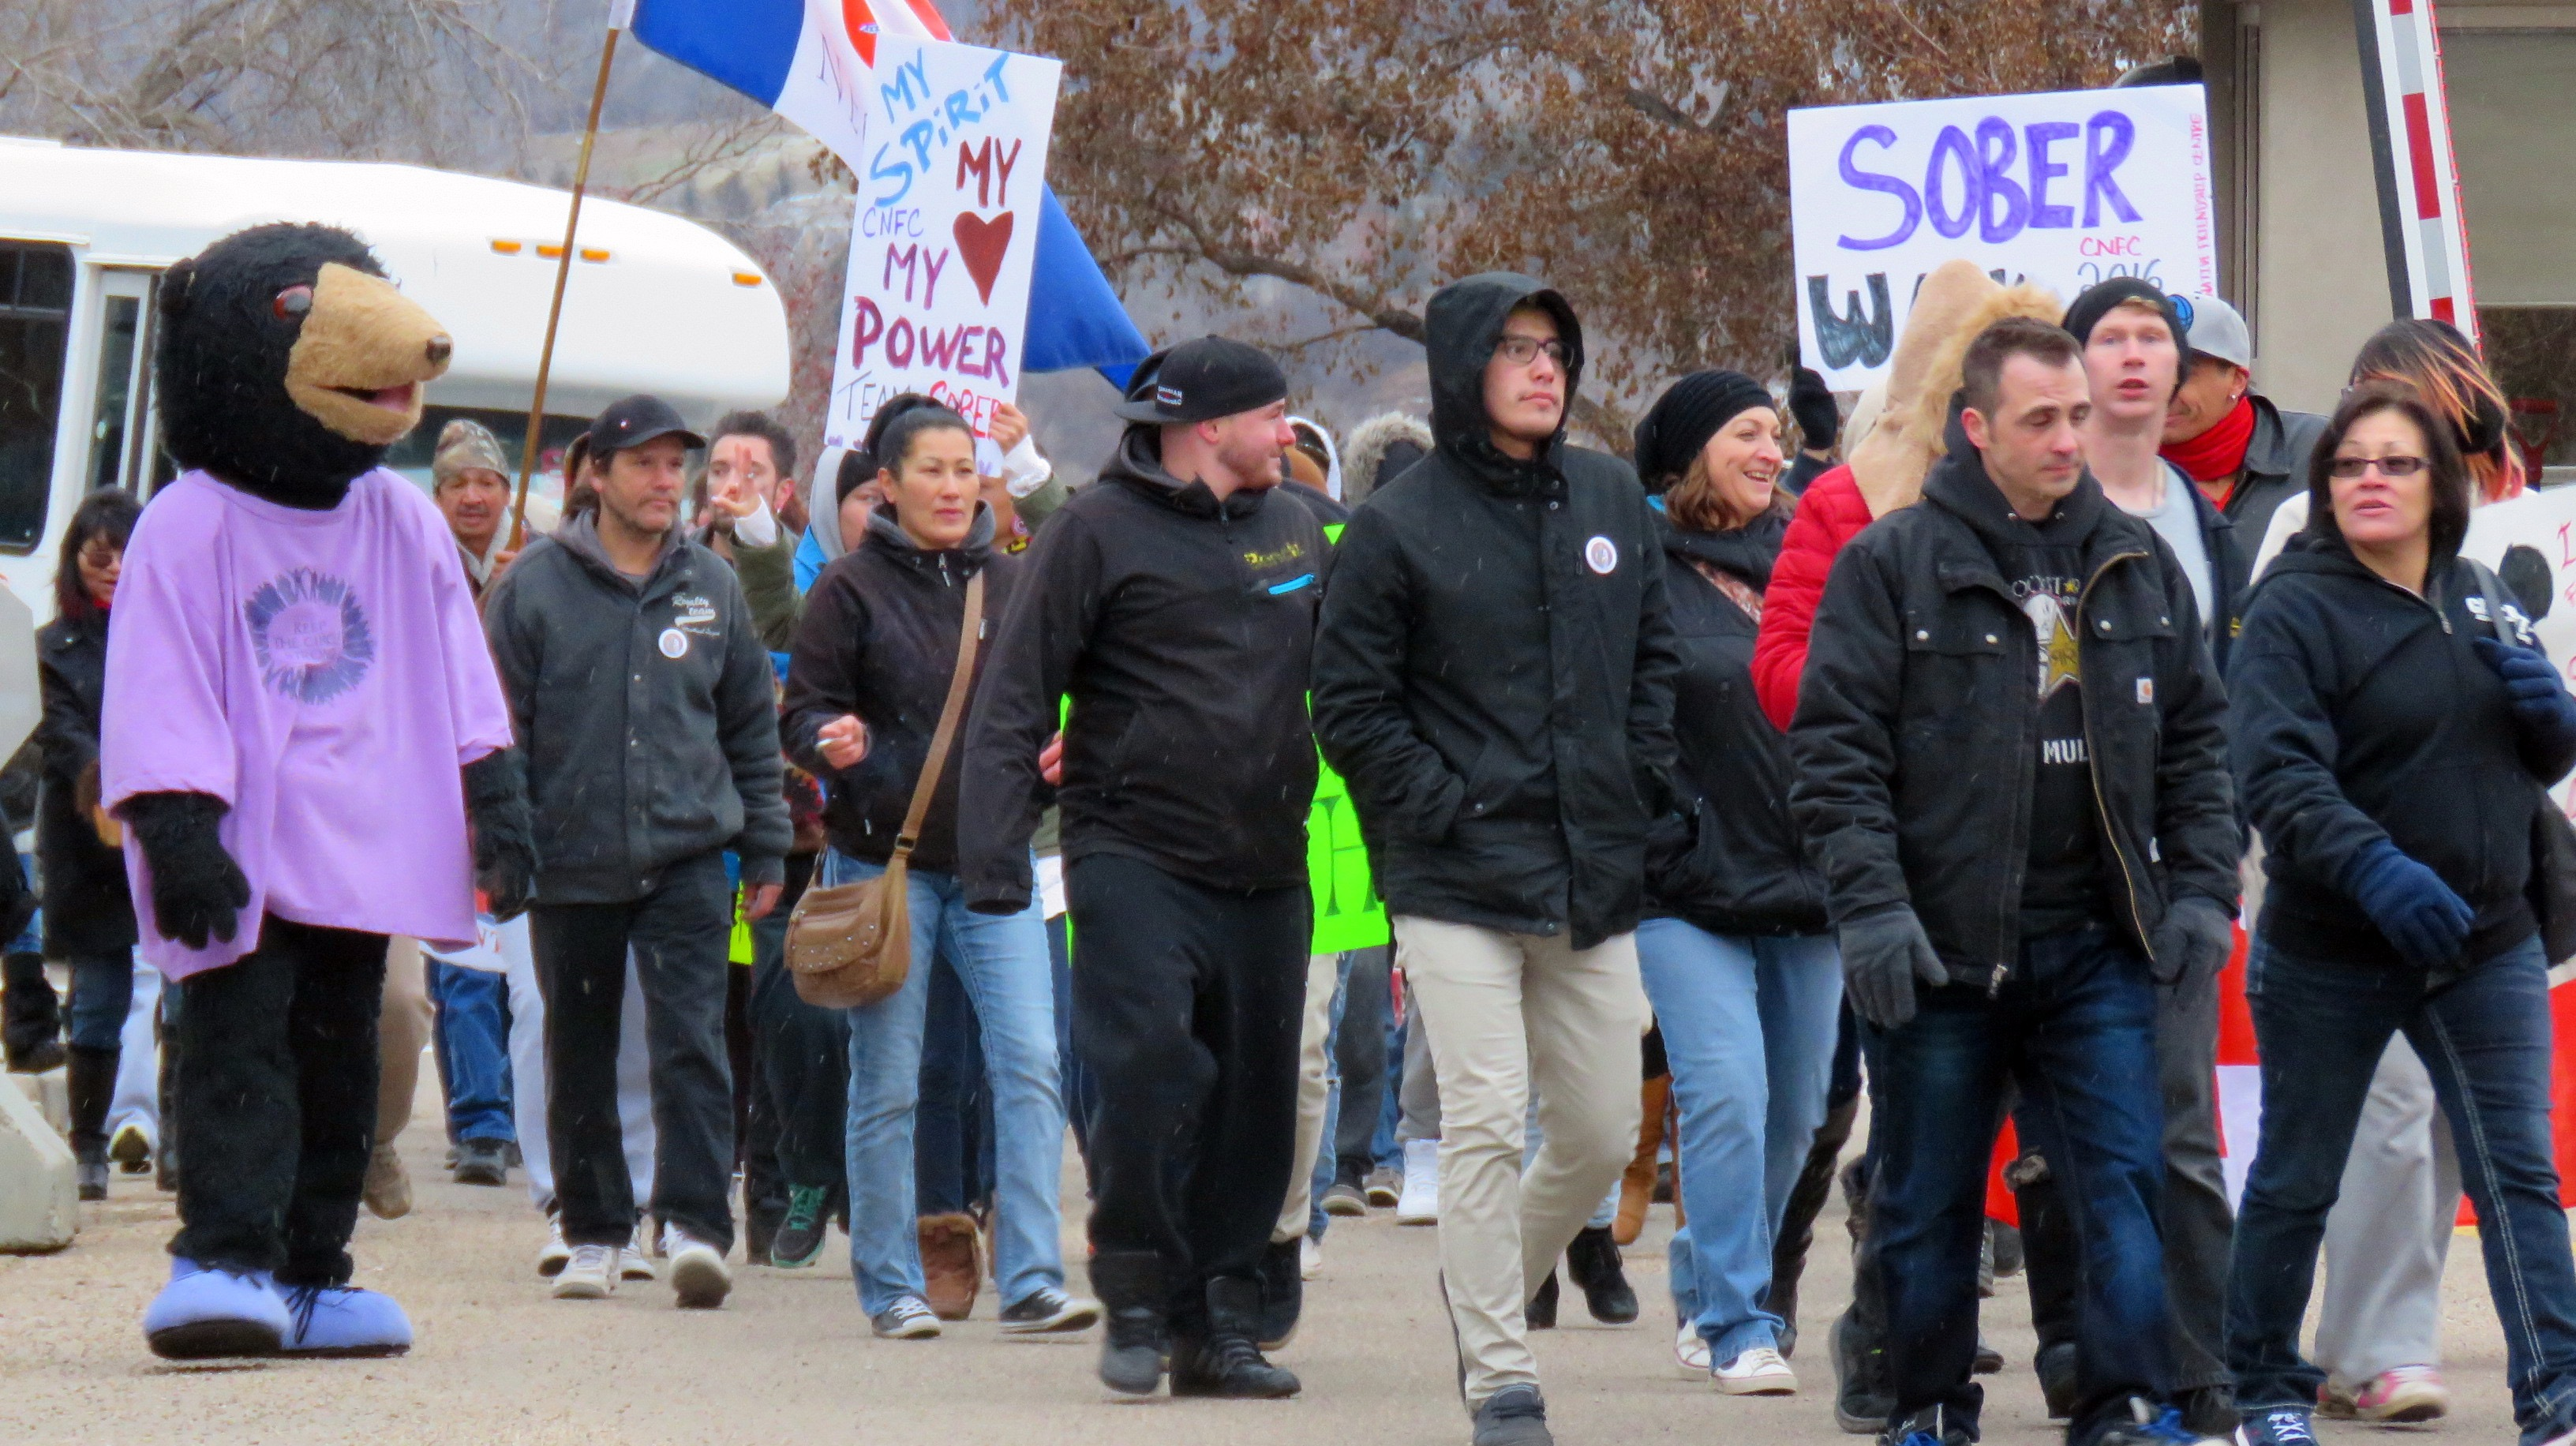 The cool November weather didn't stop the walkers from marching from Canada Place to the Alberta Legislature in Edmonton last month to celebrate National Addictions Awareness Week.